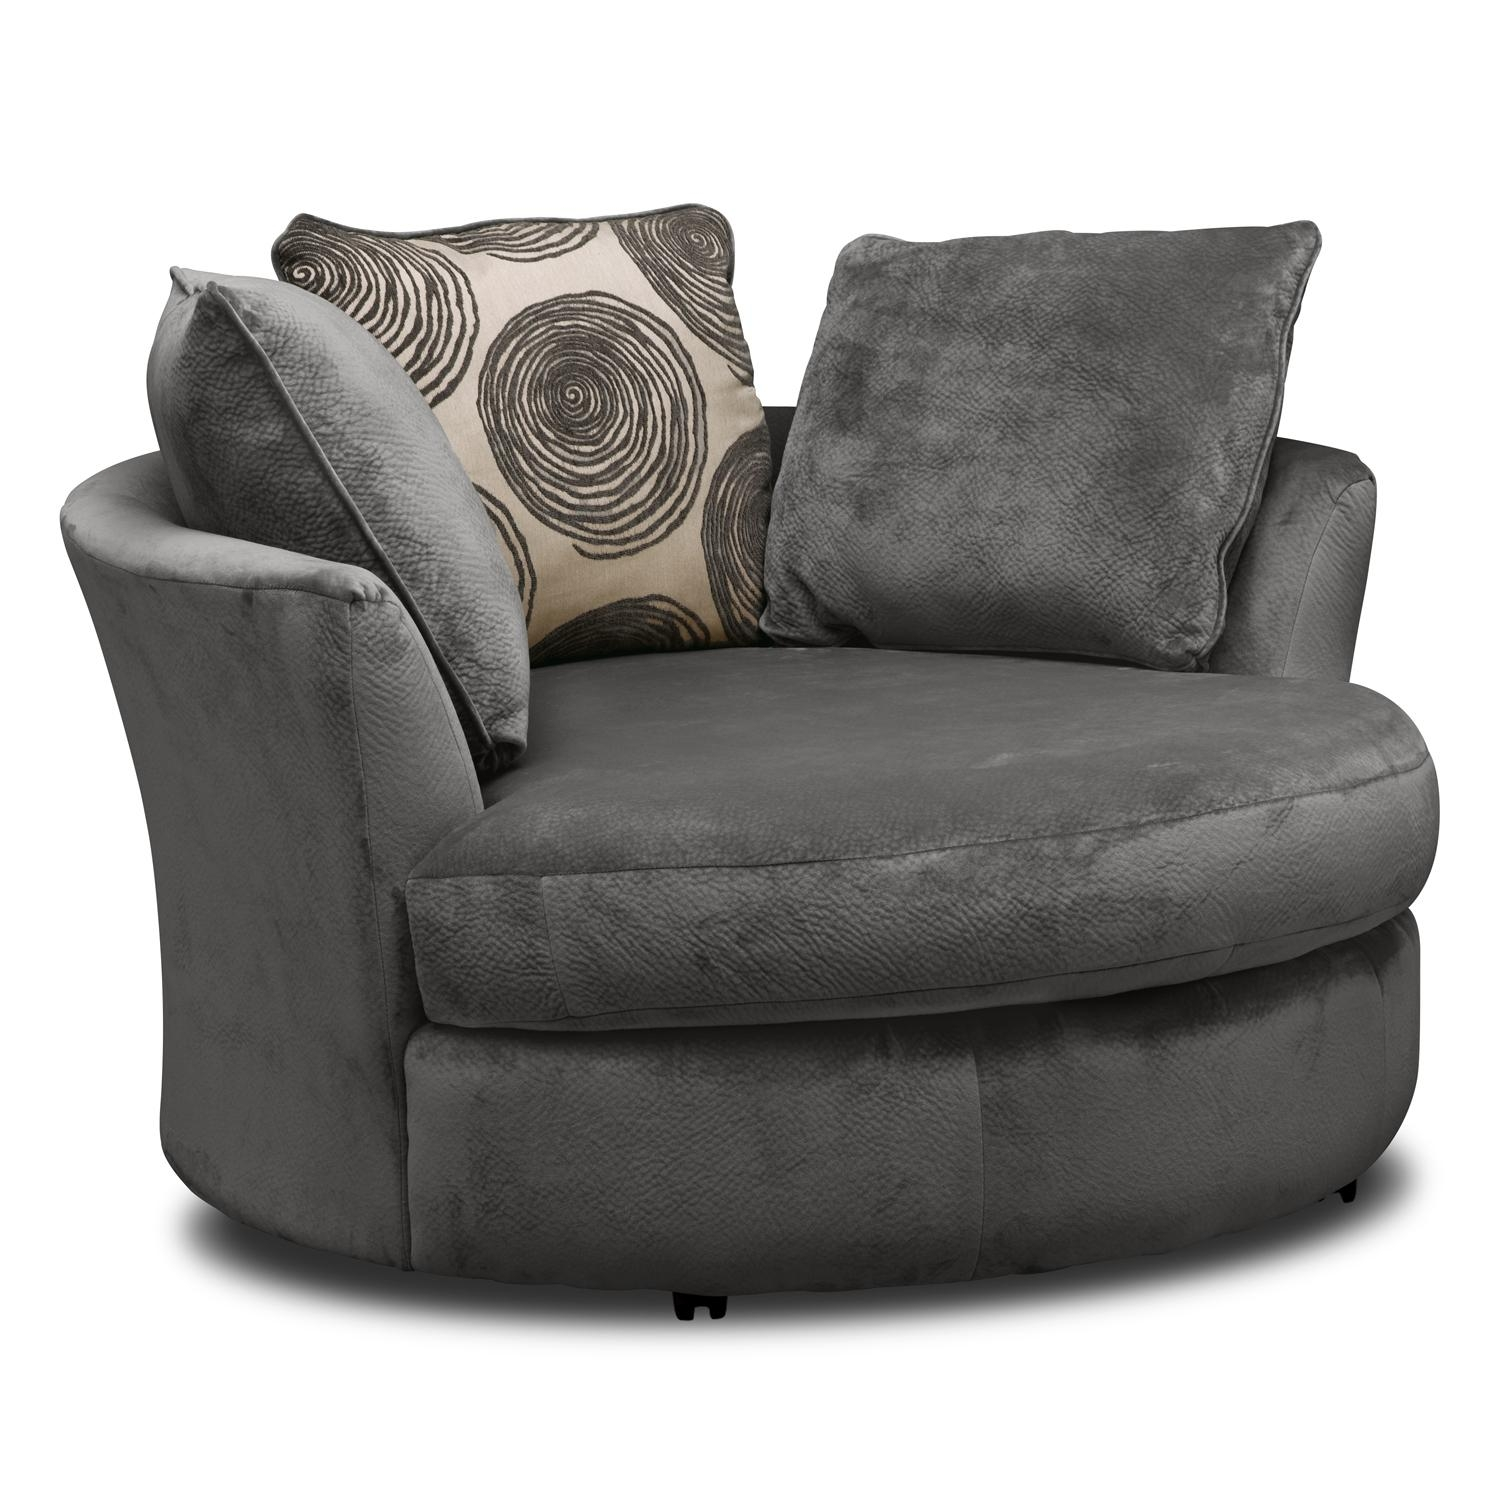 Circular Chair 20 Best Collection Of Round Sofa Chair Sofa Ideas